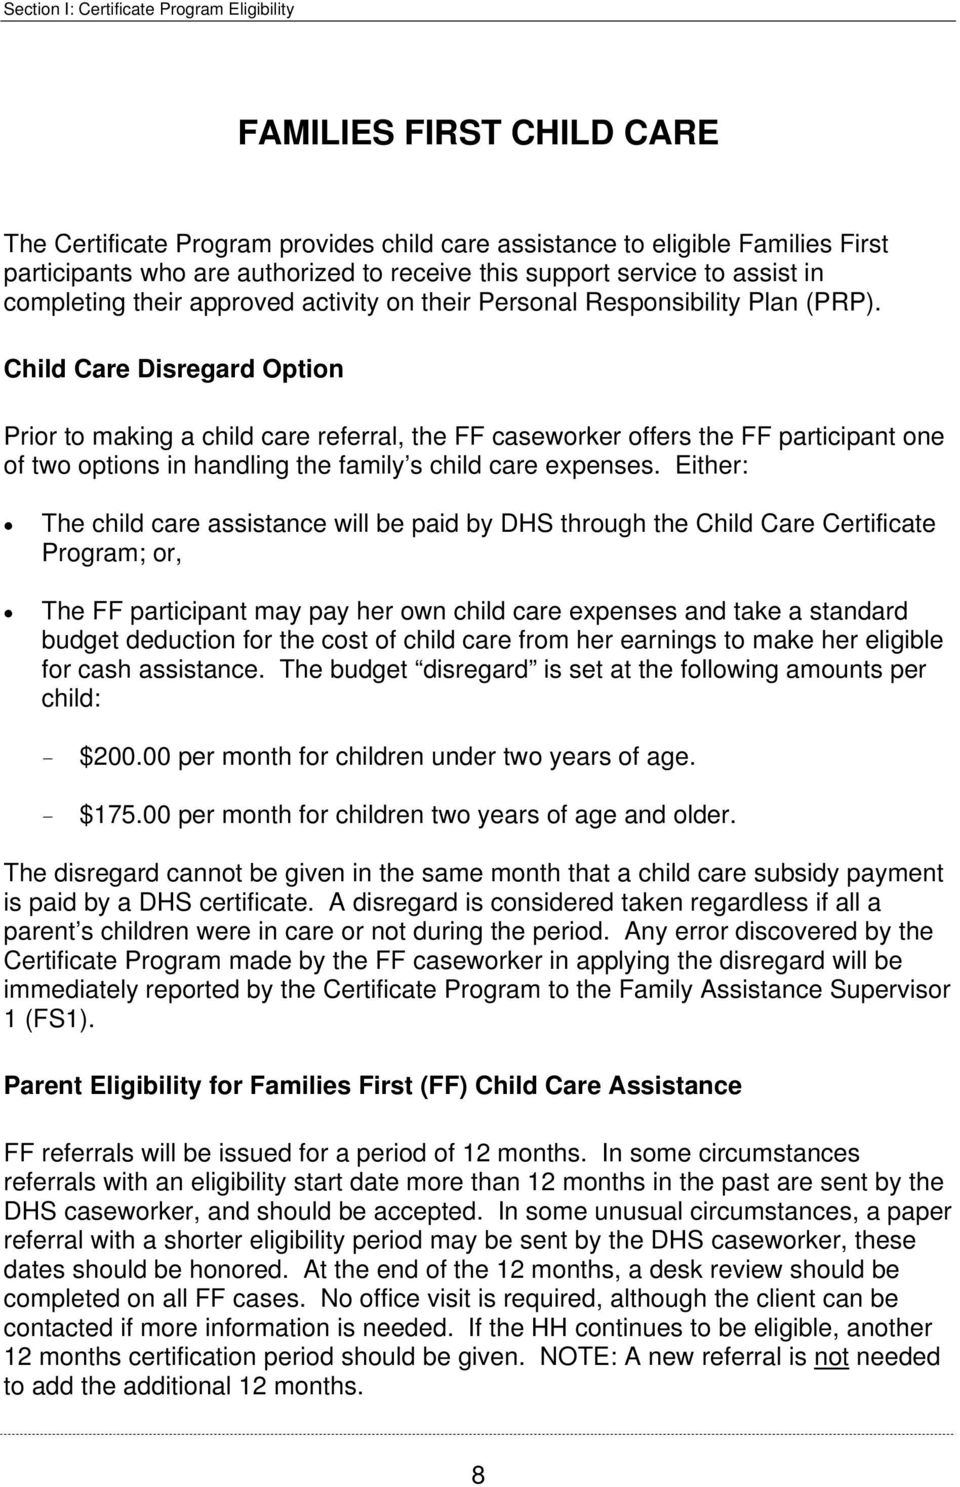 State Of Tennessee Department Of Human Services Child Care